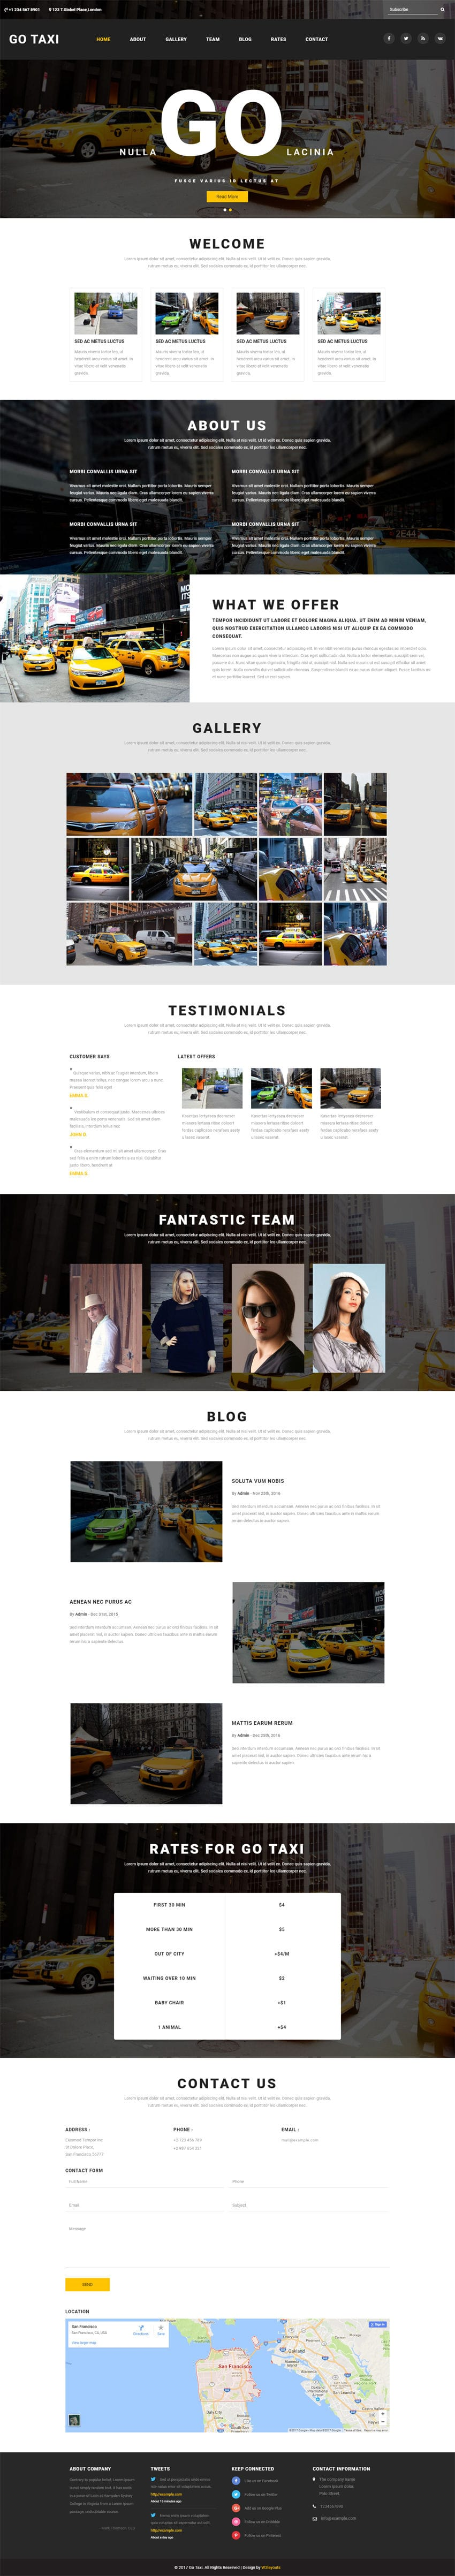 top result 70 lovely contact us php template pic 2018 hiw6 2017